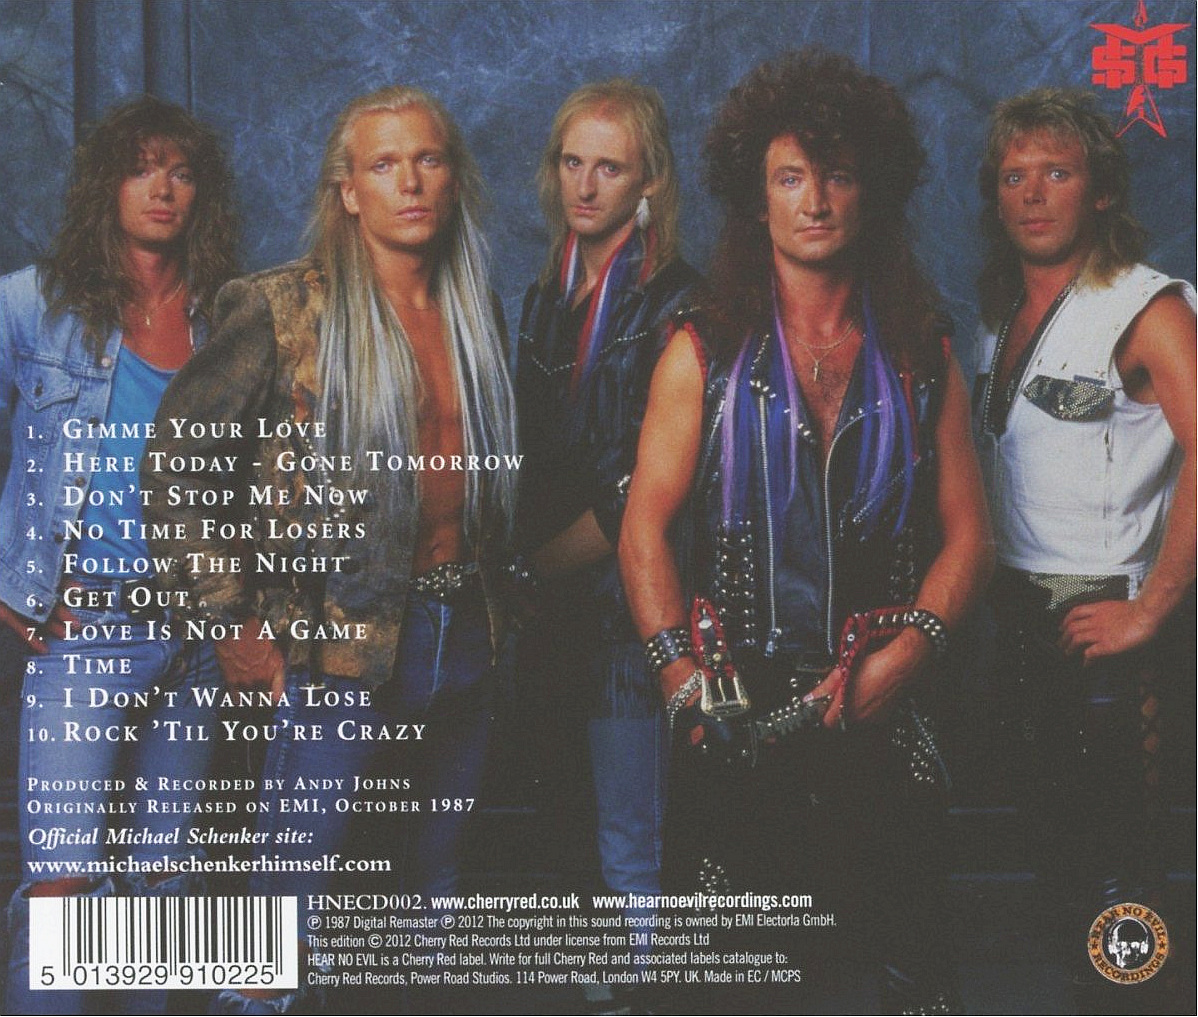 McAULEY SCHENKER GROUP - Perfect Timing [Remastered] (2012) back cover